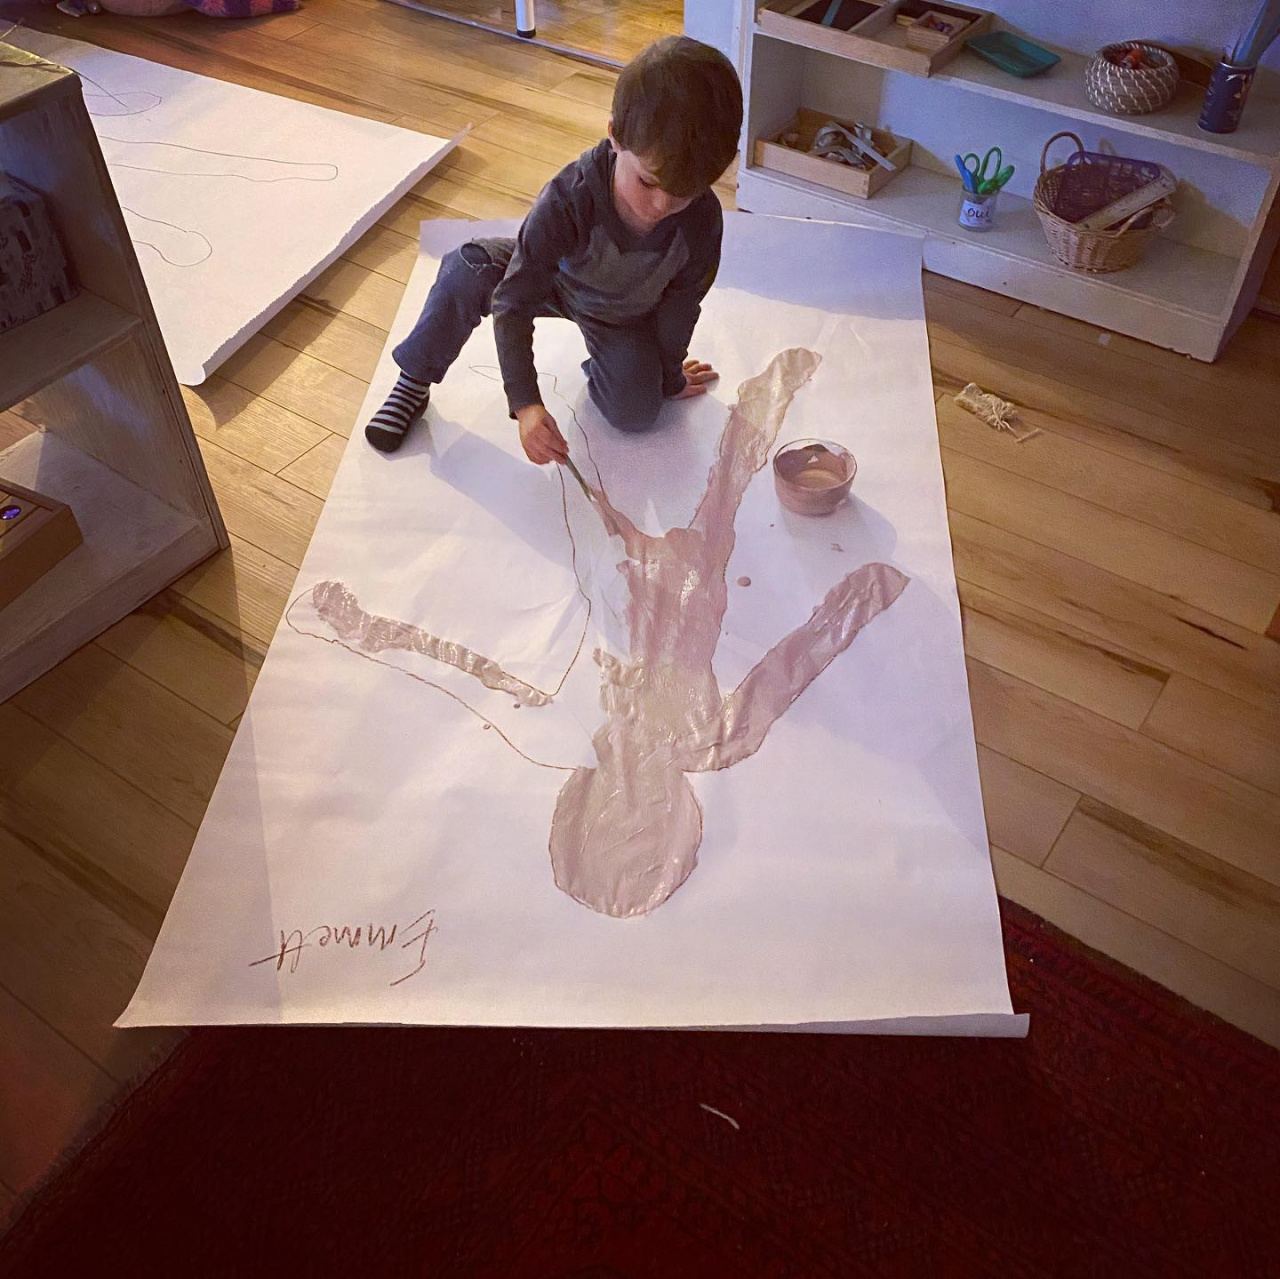 Tracing and Painting Full-Body Self-Portraits